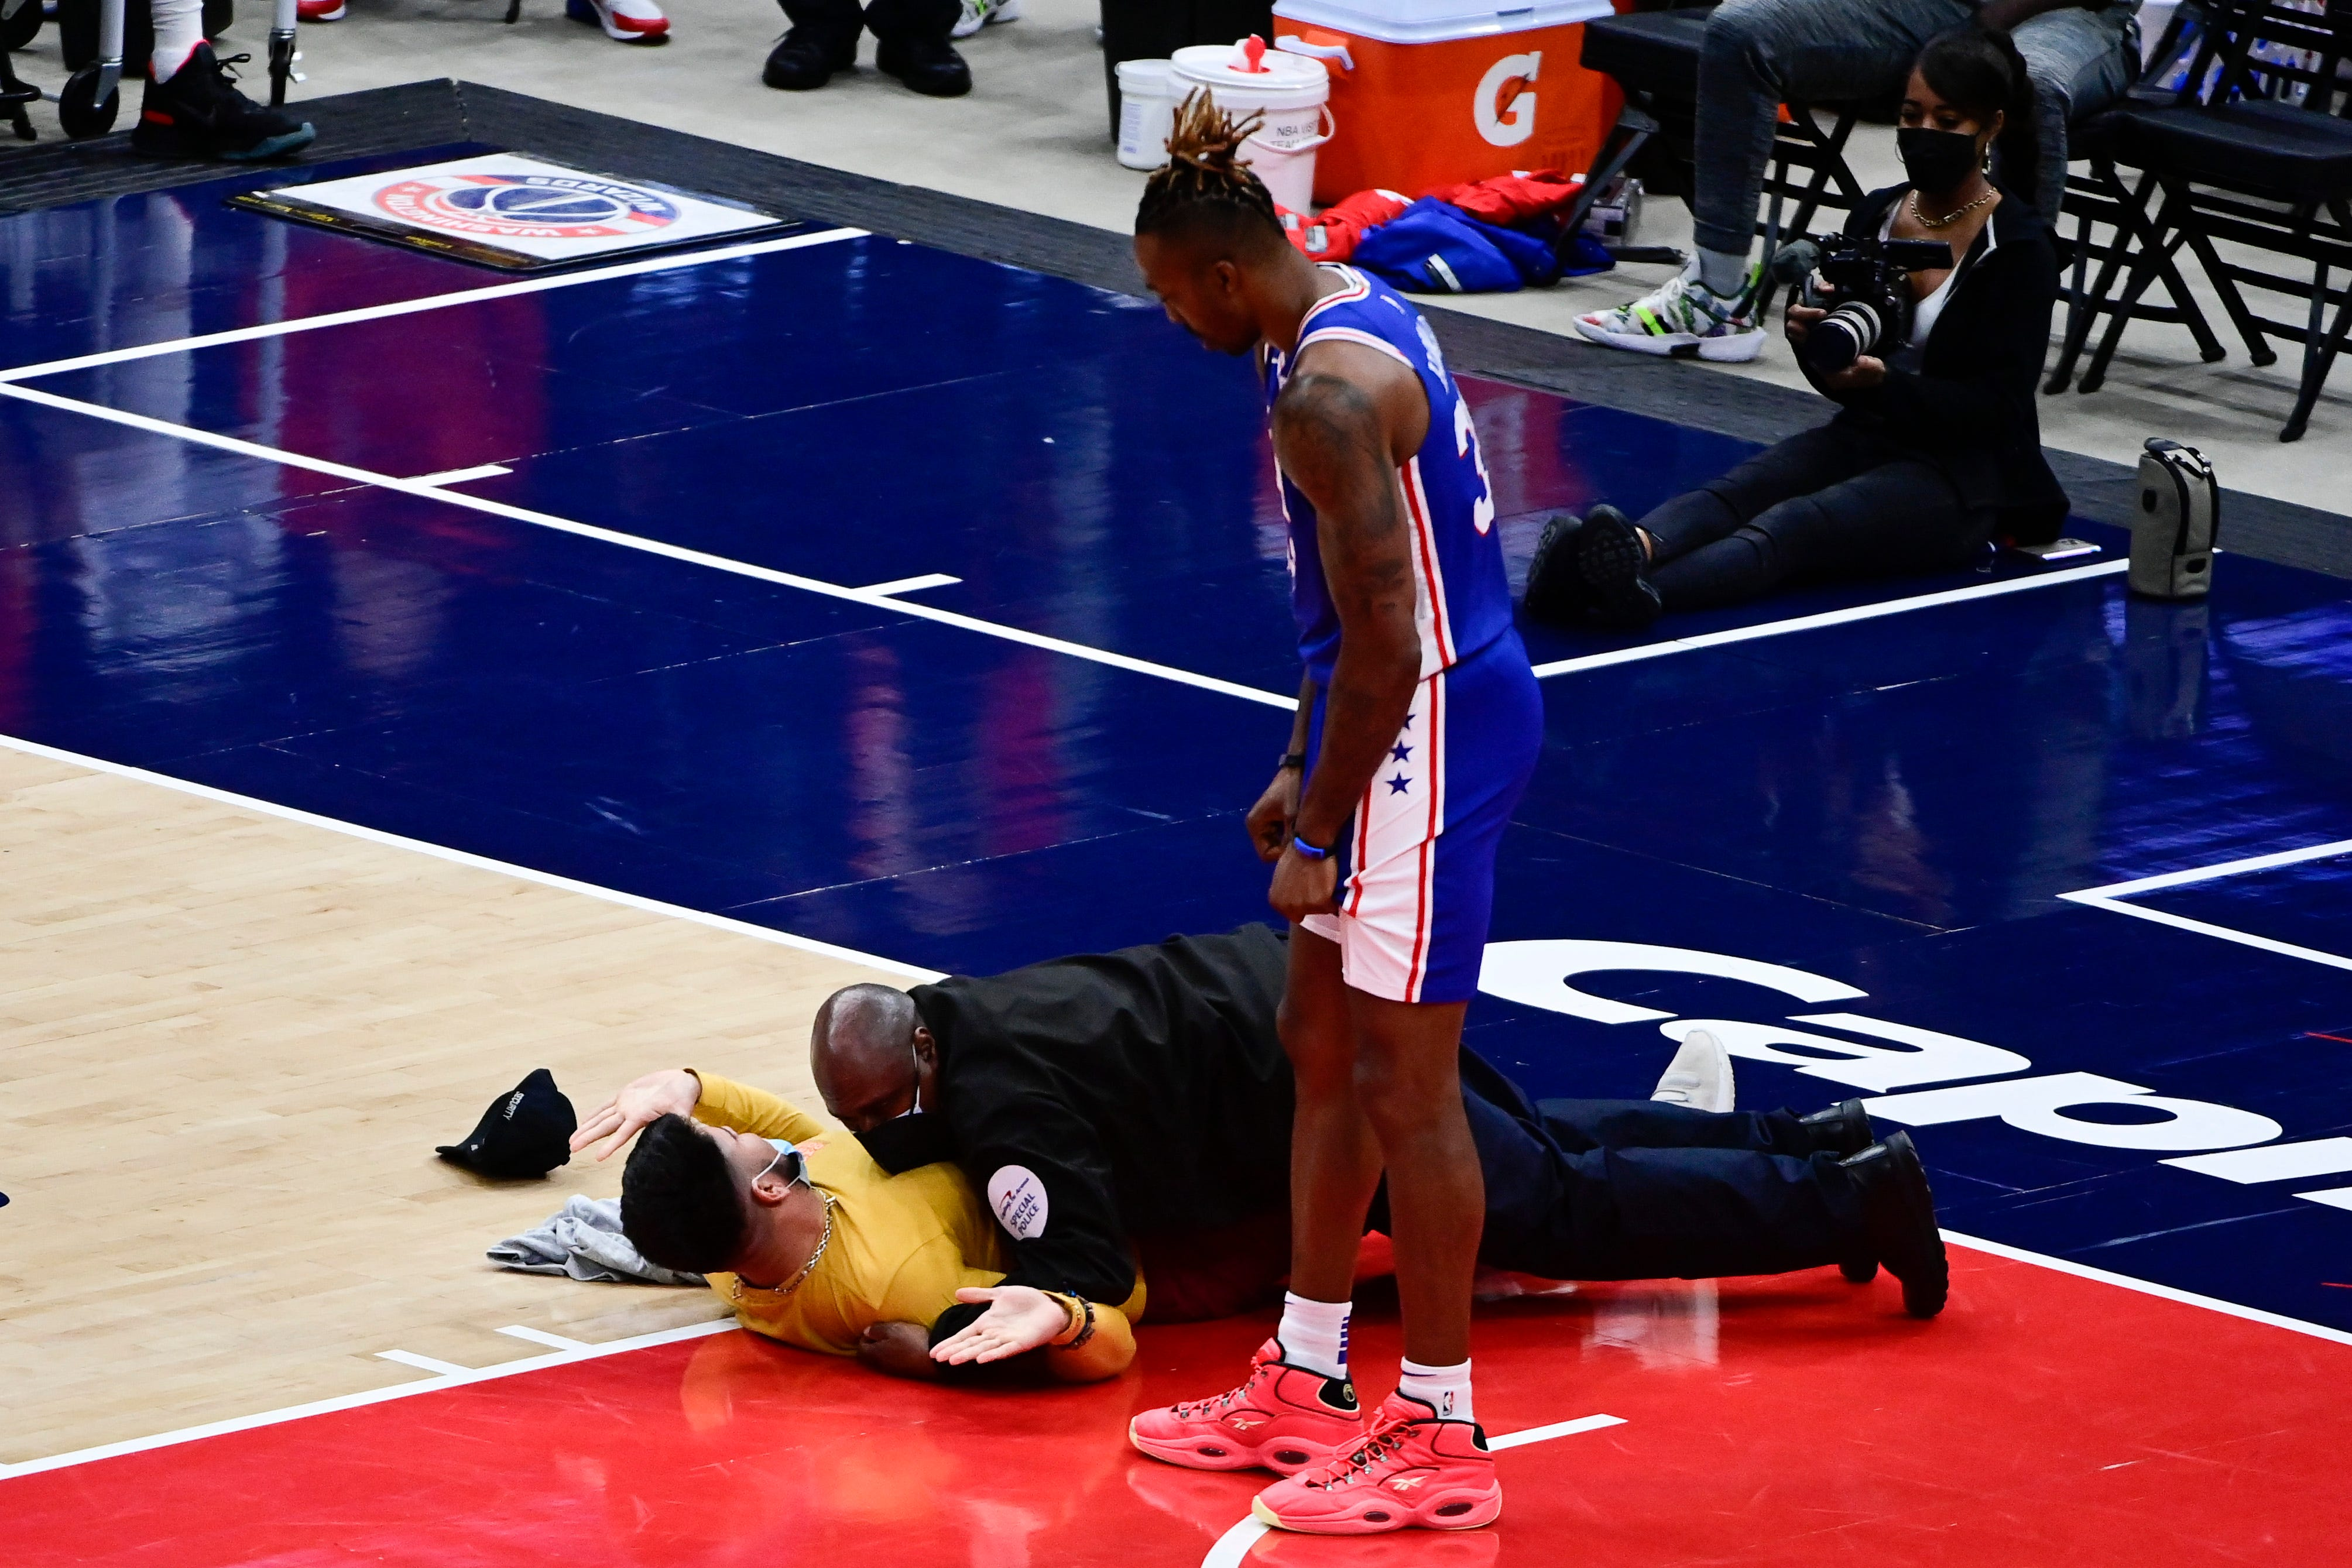 Fan runs onto court, gets tackled by security guard during Game 4 of 76ers-Wizards NBA playoff series